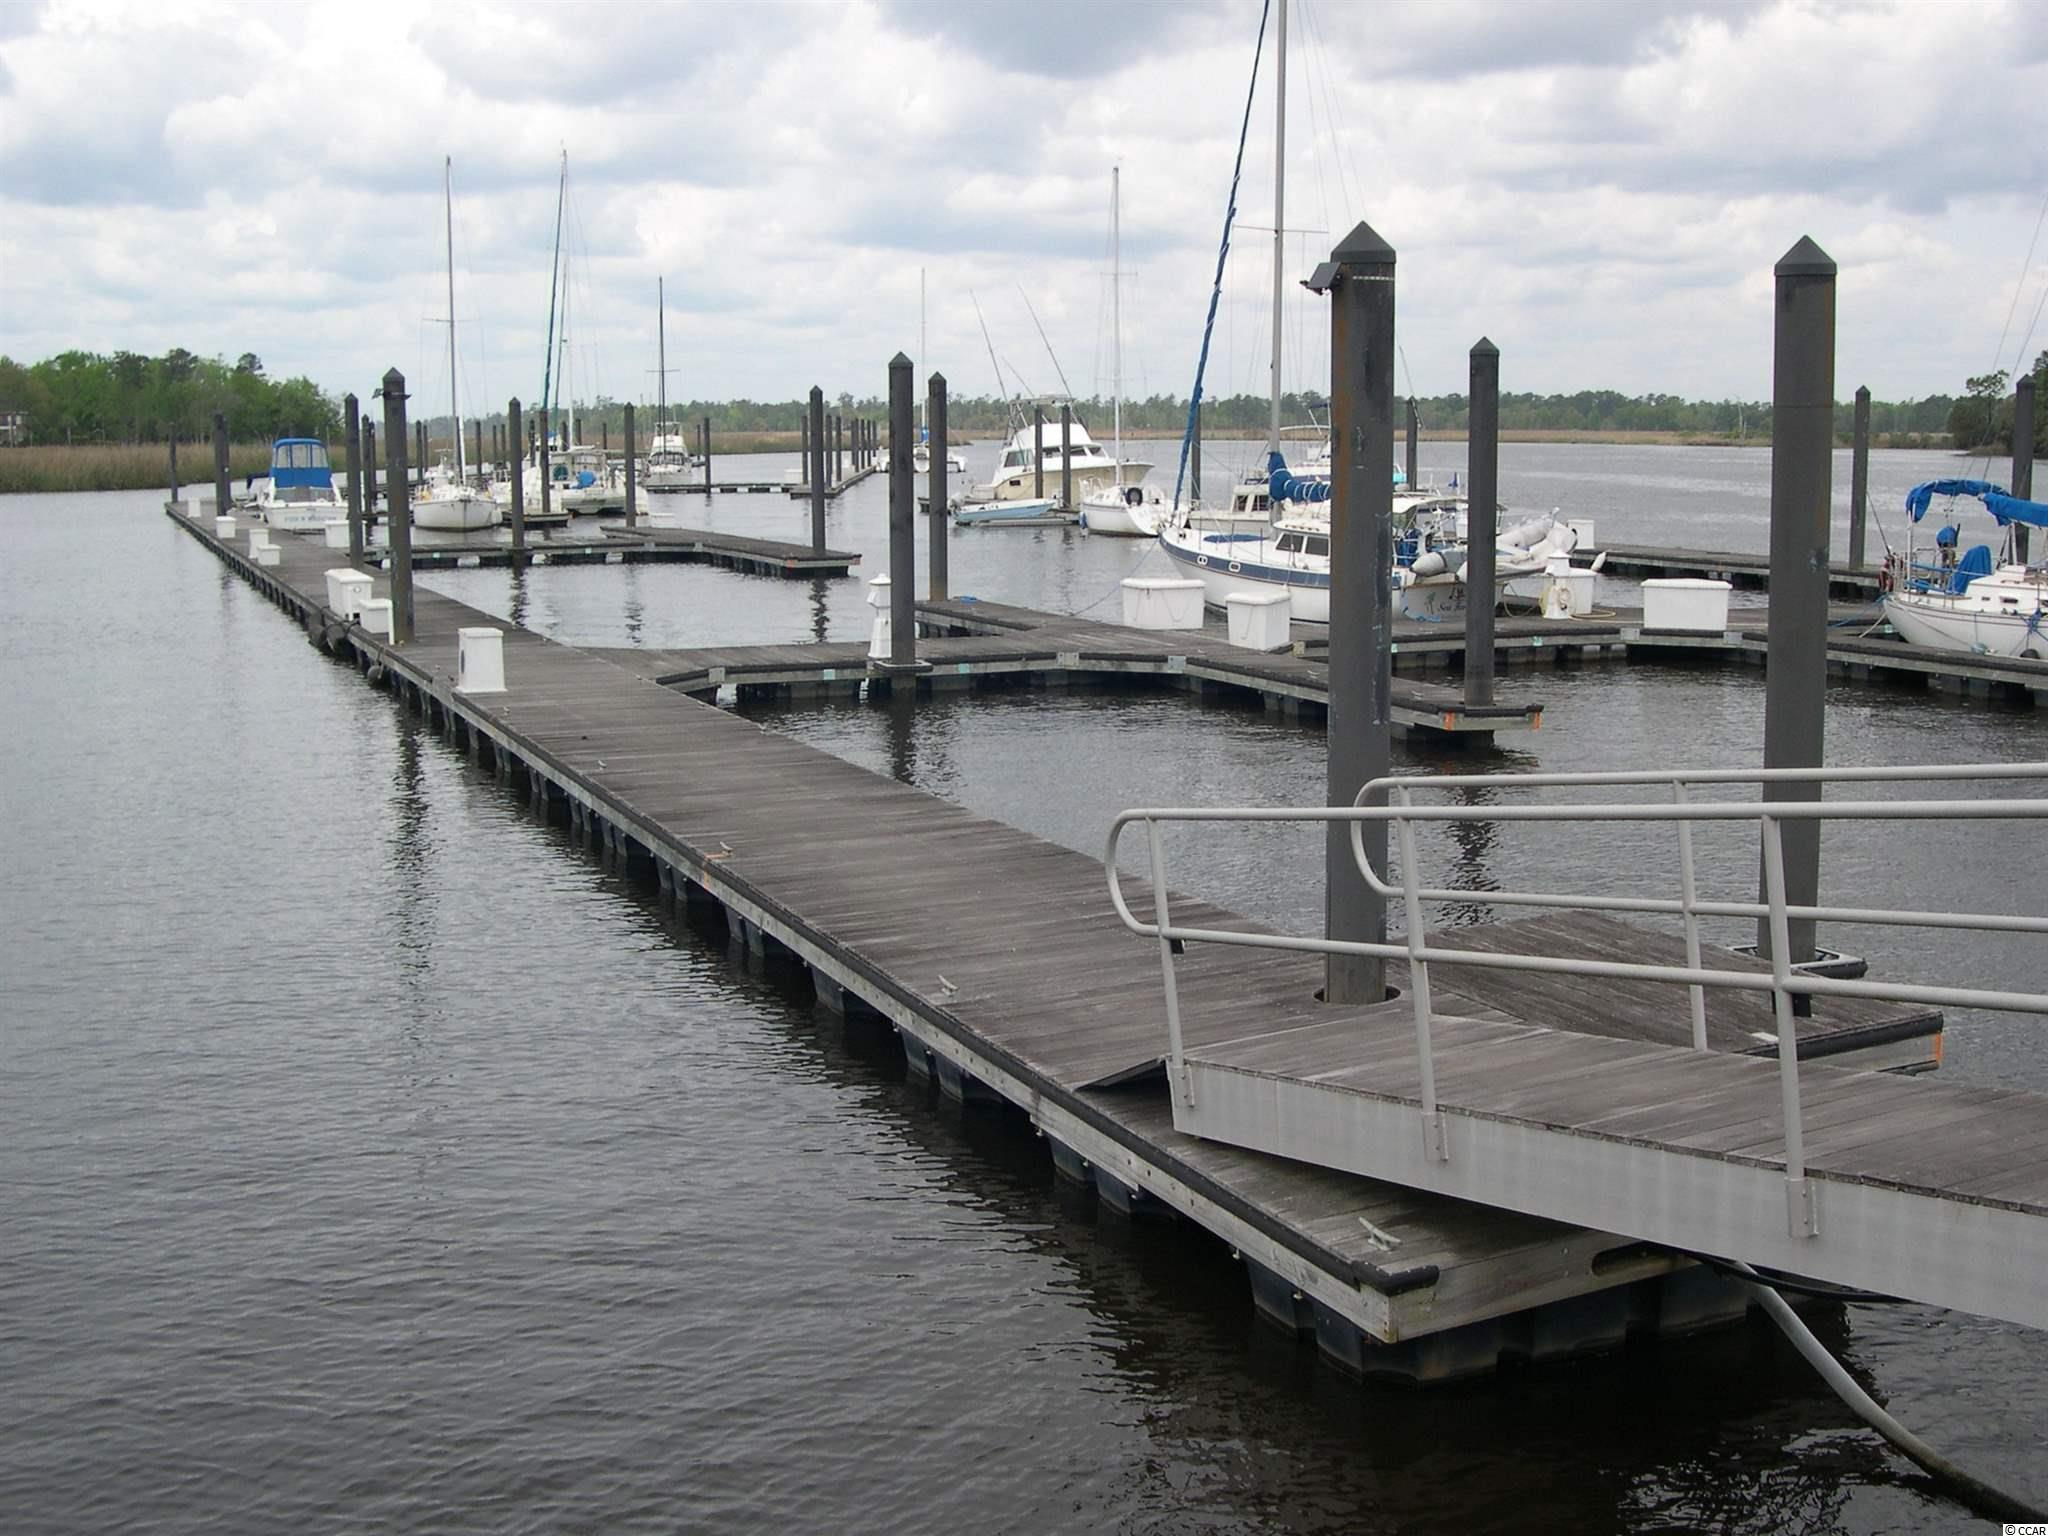 "This is your chance to own one of the largest boat slips in Friendfield Marina located on the Sampit River.  It will accommodate a 30 foot boat and is the prime location  ( boat slip #1) as you come down the ramp to the docks.  It is an inside dock protected from the river. Seller says  ""bring all offers""  AT THIS TIME:  YOU MUST BE A PROPERTY OWNER IN HARMONY TO PURCHASE A BOAT SLIP.  AND THERE ARE LOTS AVAILABLE TO PURCHASE.  CALL ME FOR INFO."